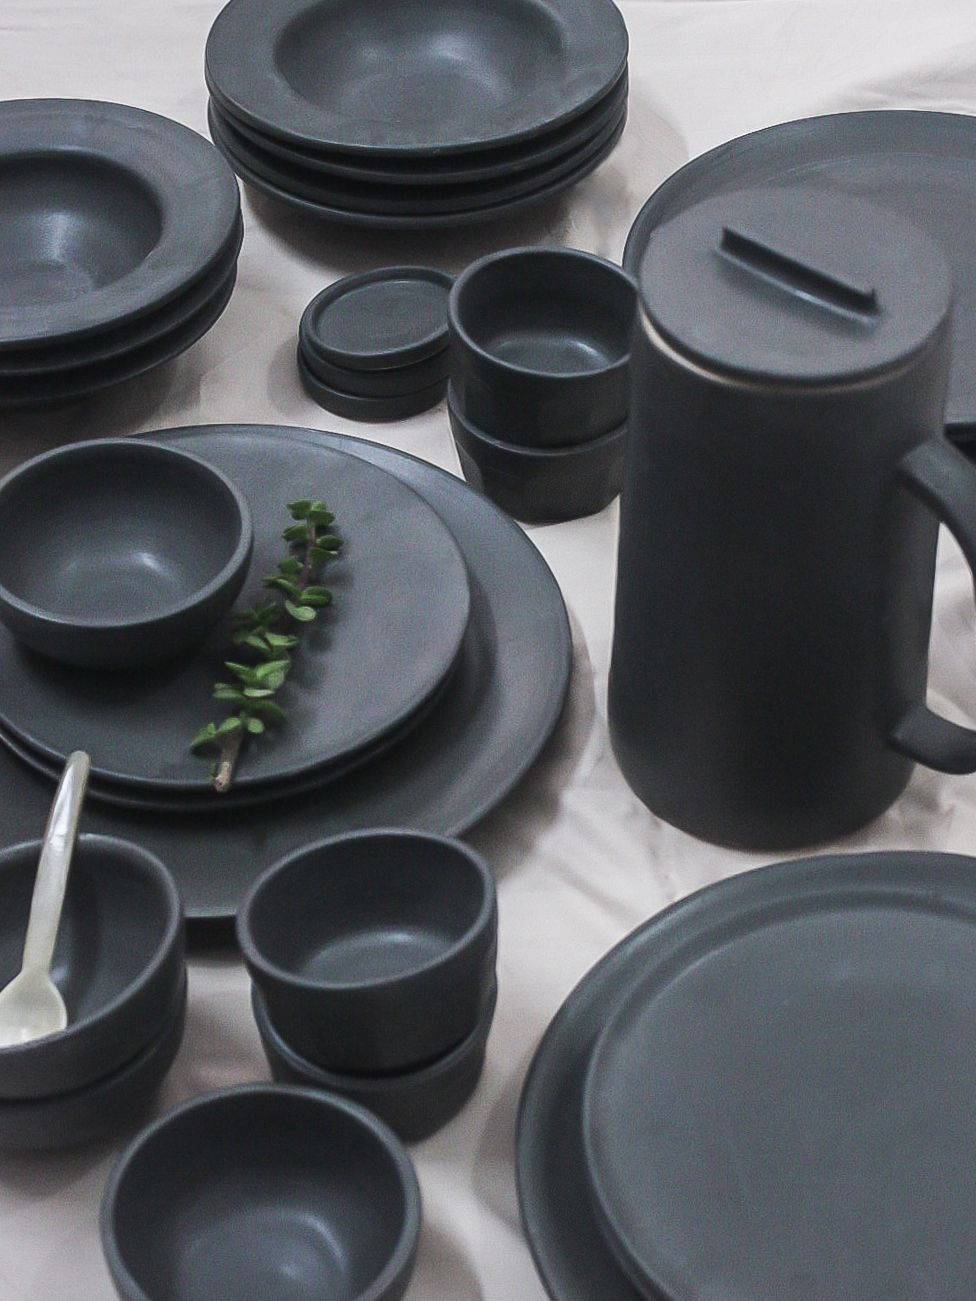 Minimal handmade black stoneware ceramic dinner plates and bowls